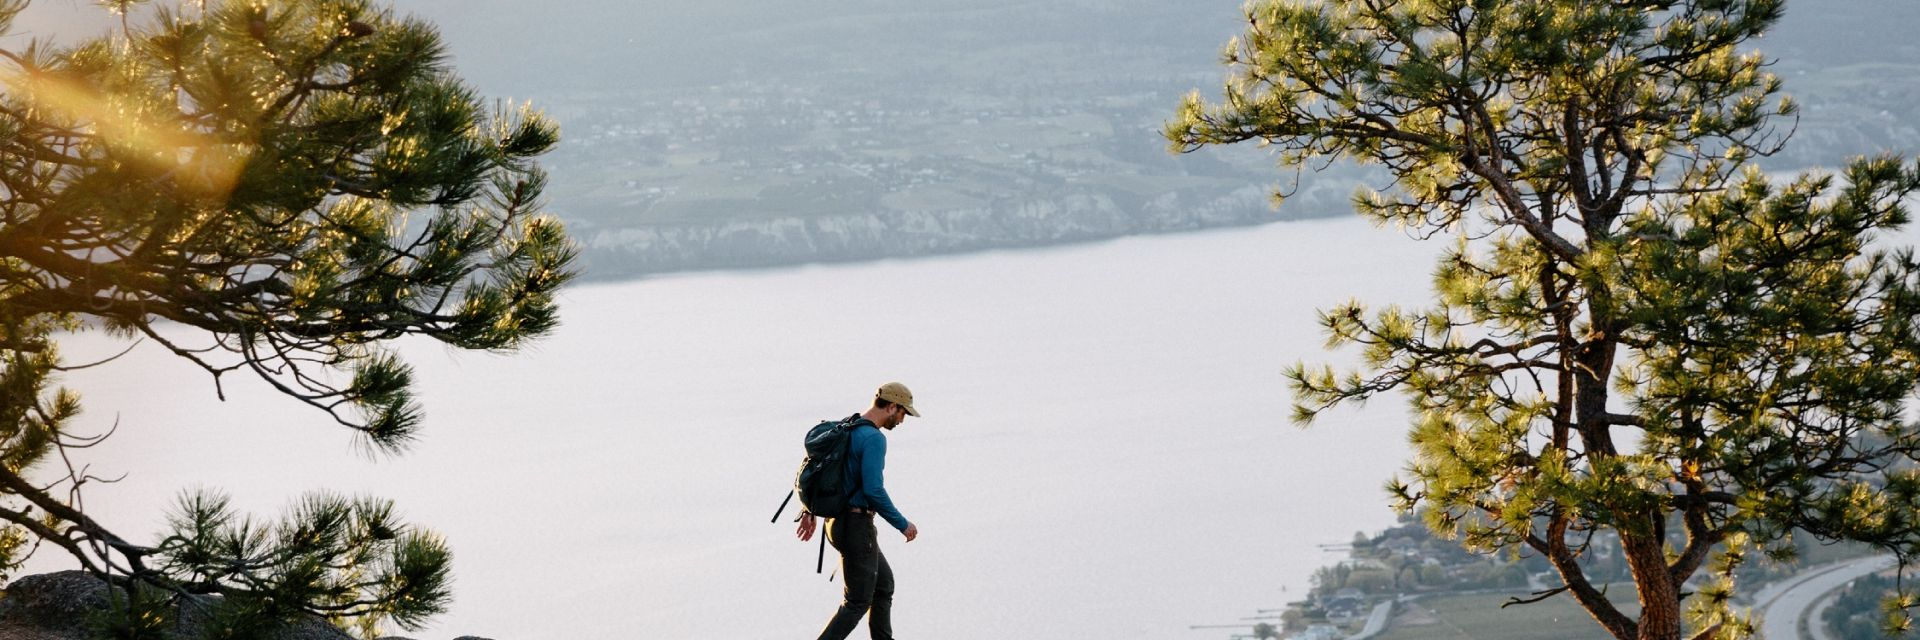 Early morning hike up Giant's Head Mountain above the town of Summerland and Okanagan Lake